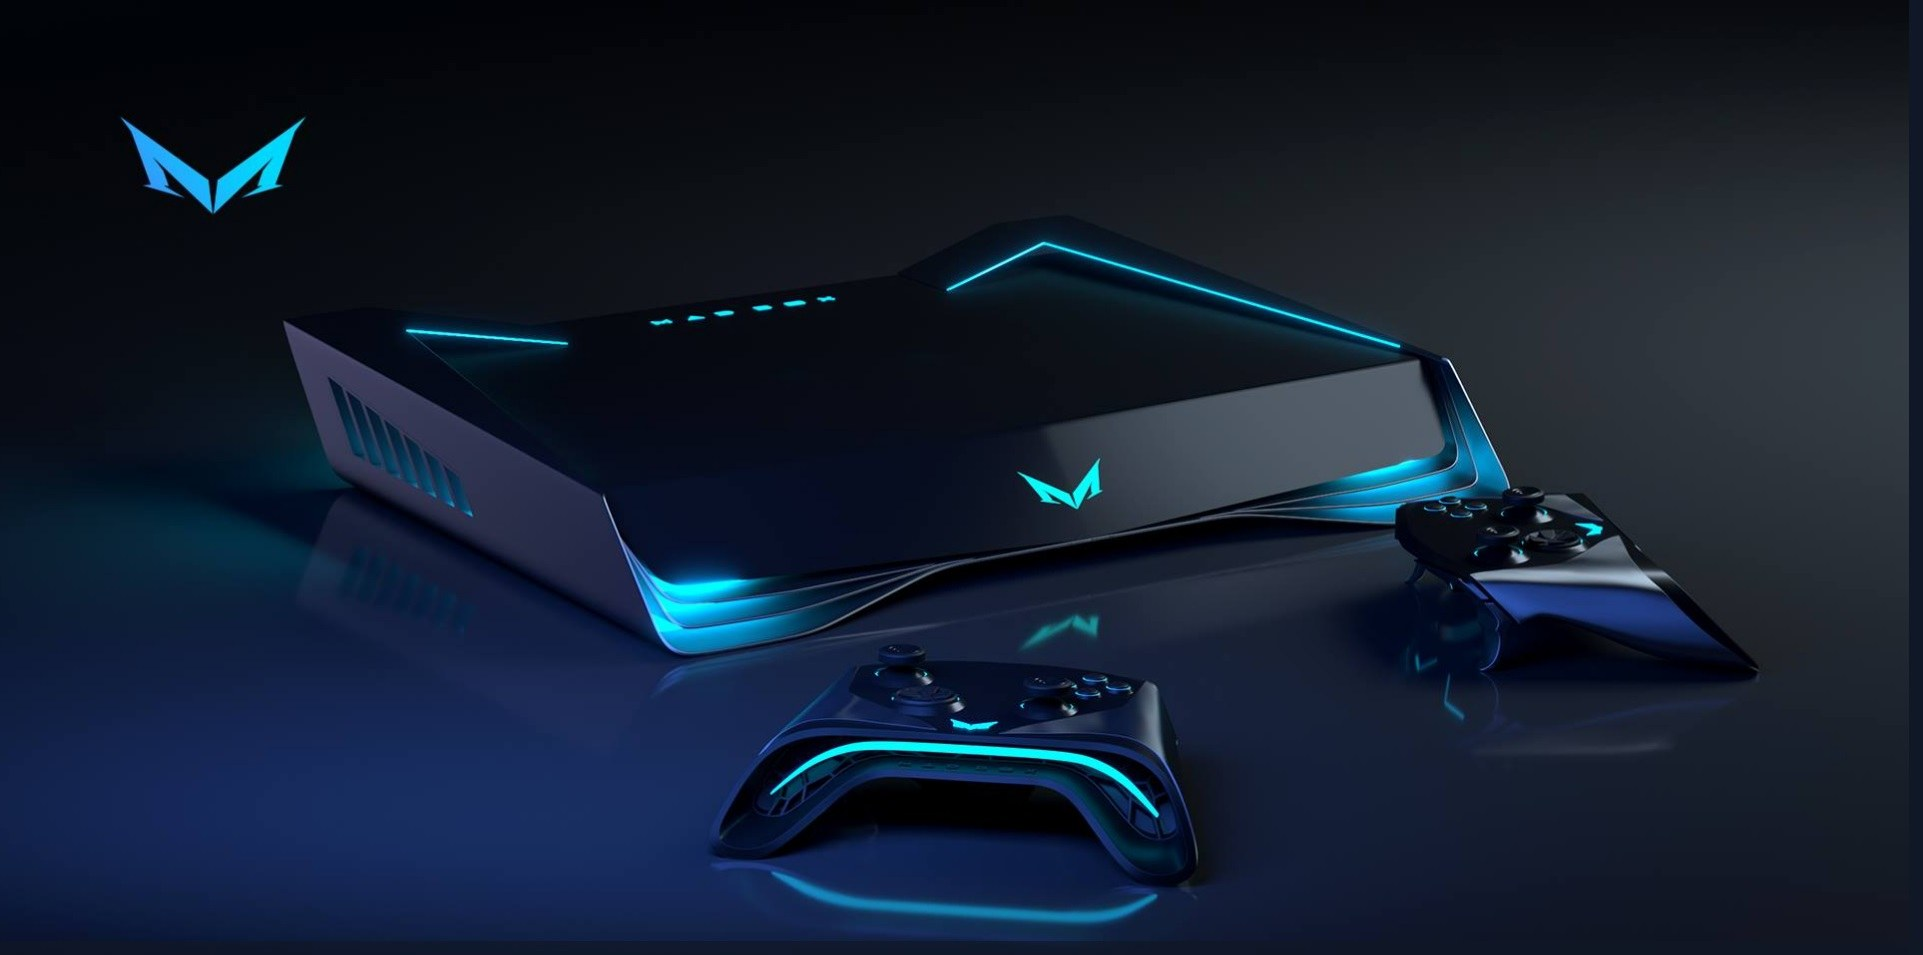 Concept images of the Mad Box, the most powerful console ever made, posted online